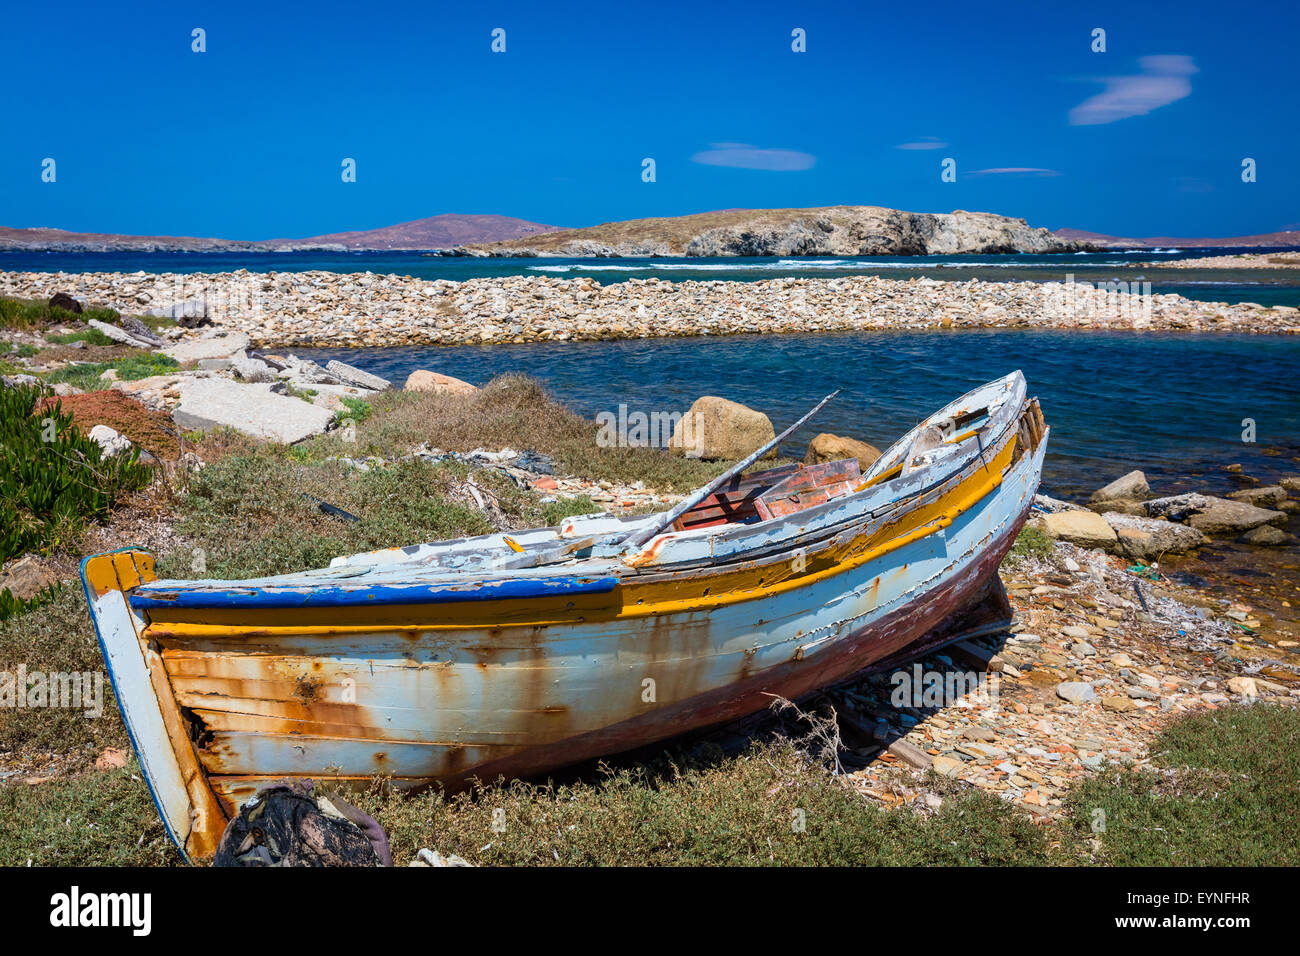 Dilapidated Greek boat in the Aegean Sea on the island of Delos - Stock Image